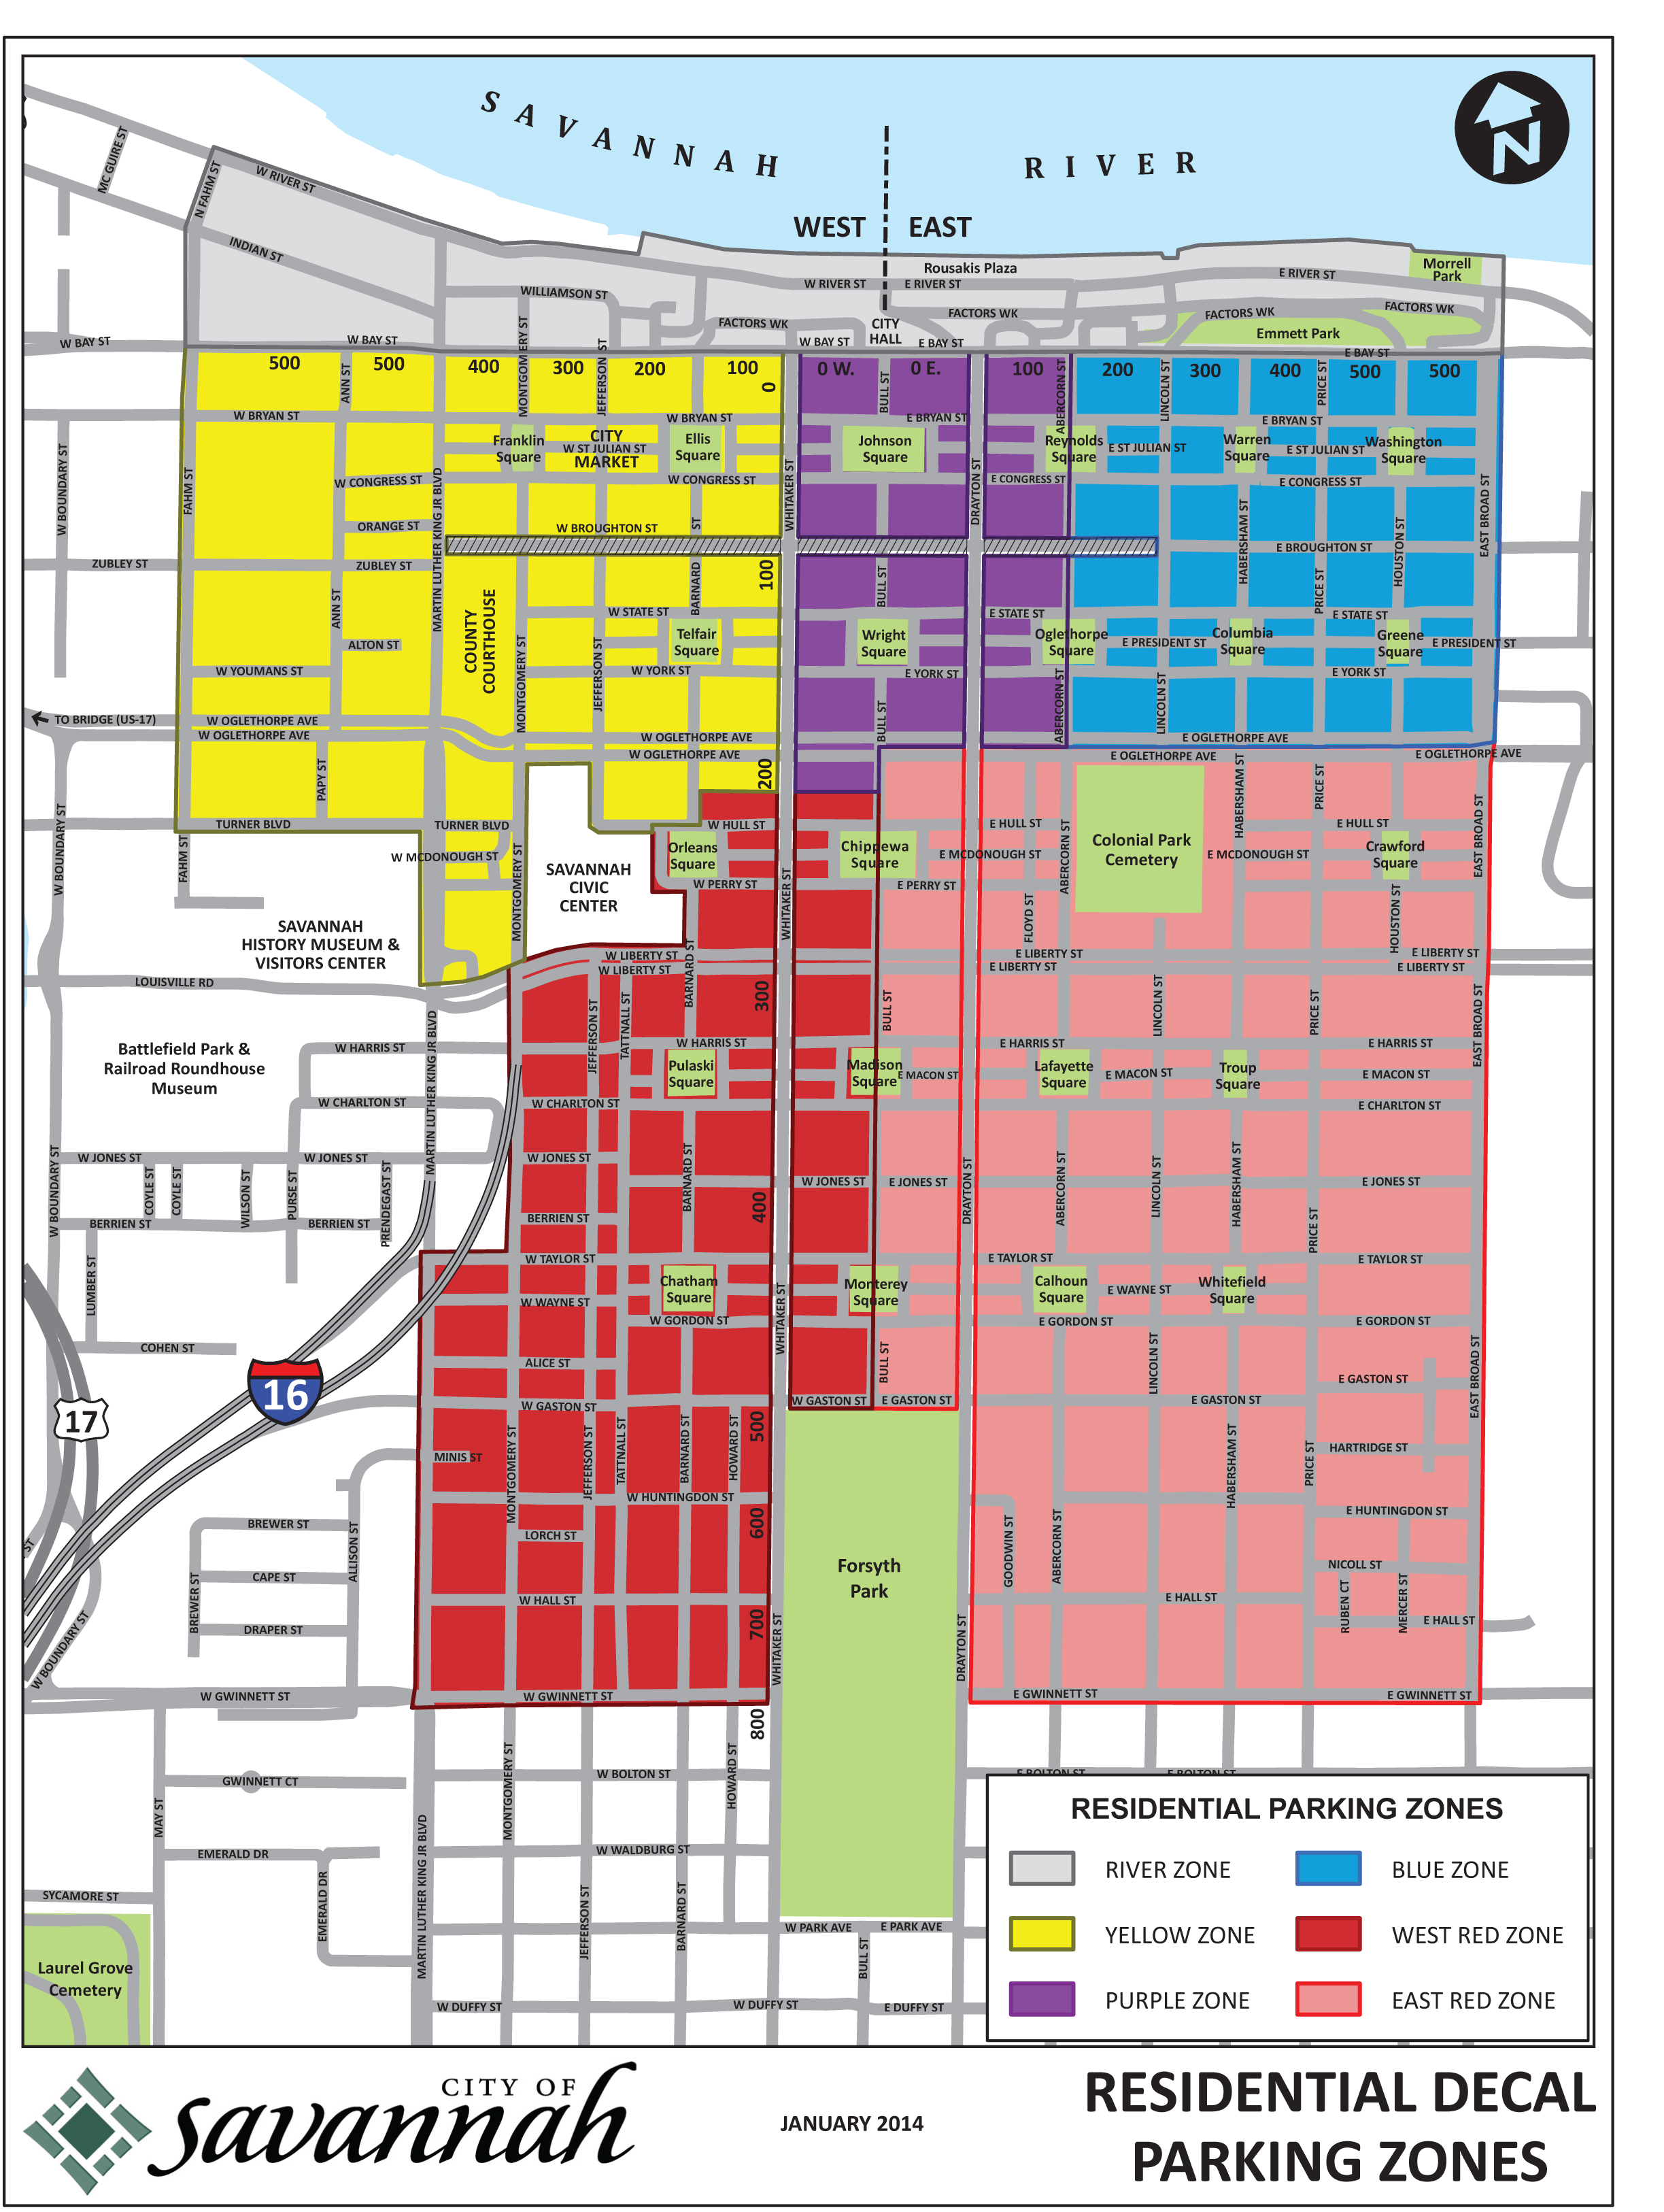 Savannah Downtown Neighborhood Association New Residential Parking Decal Zones Expanded